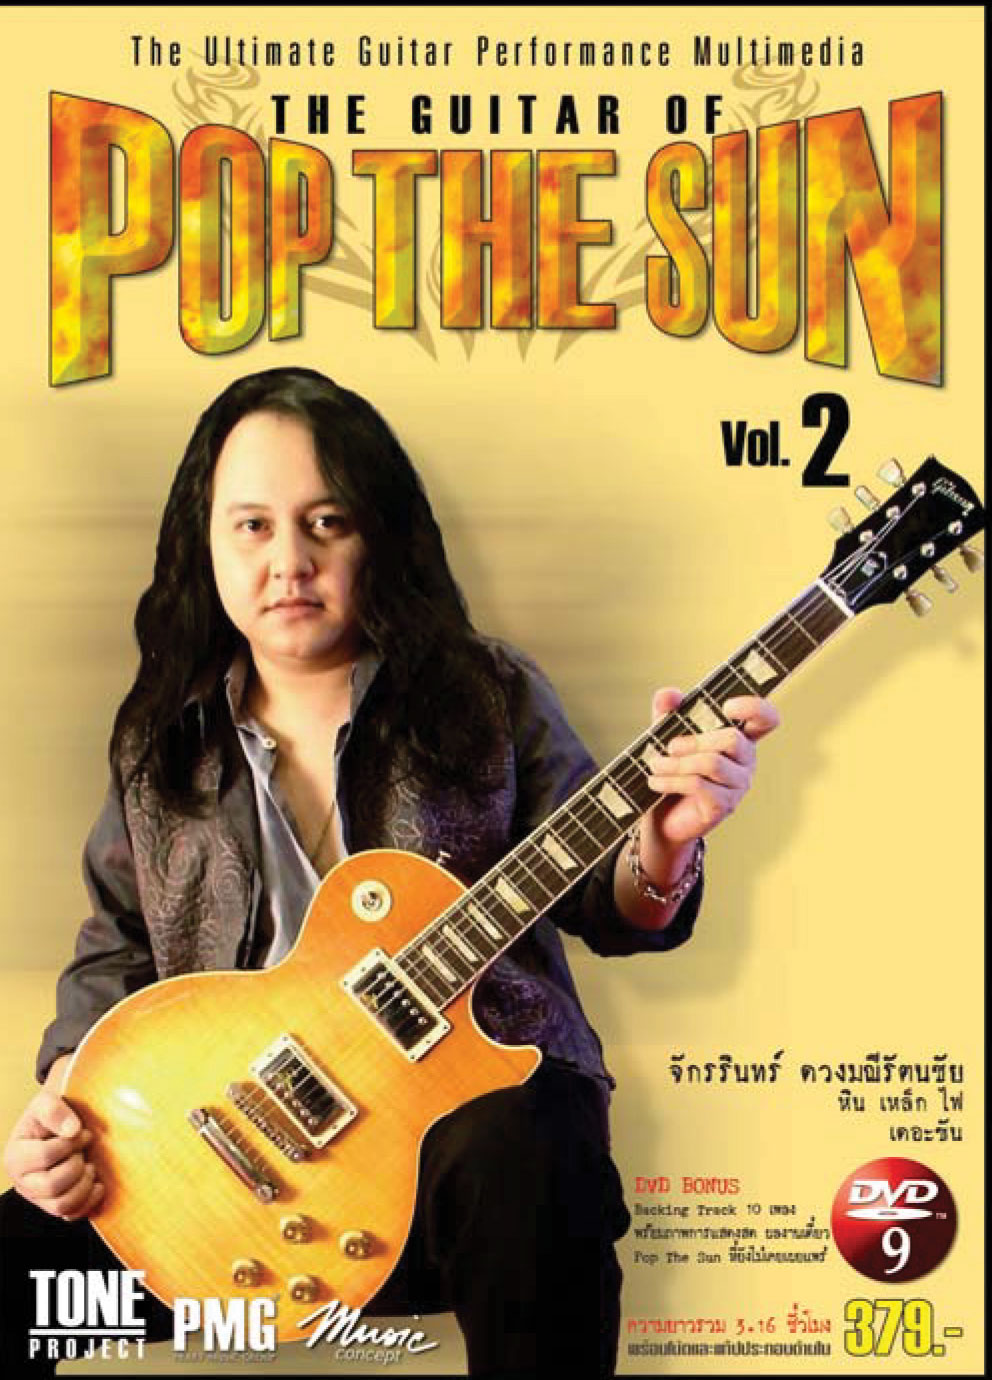 the guitar of pop the sun vol 2 2006 pmg music store inspired